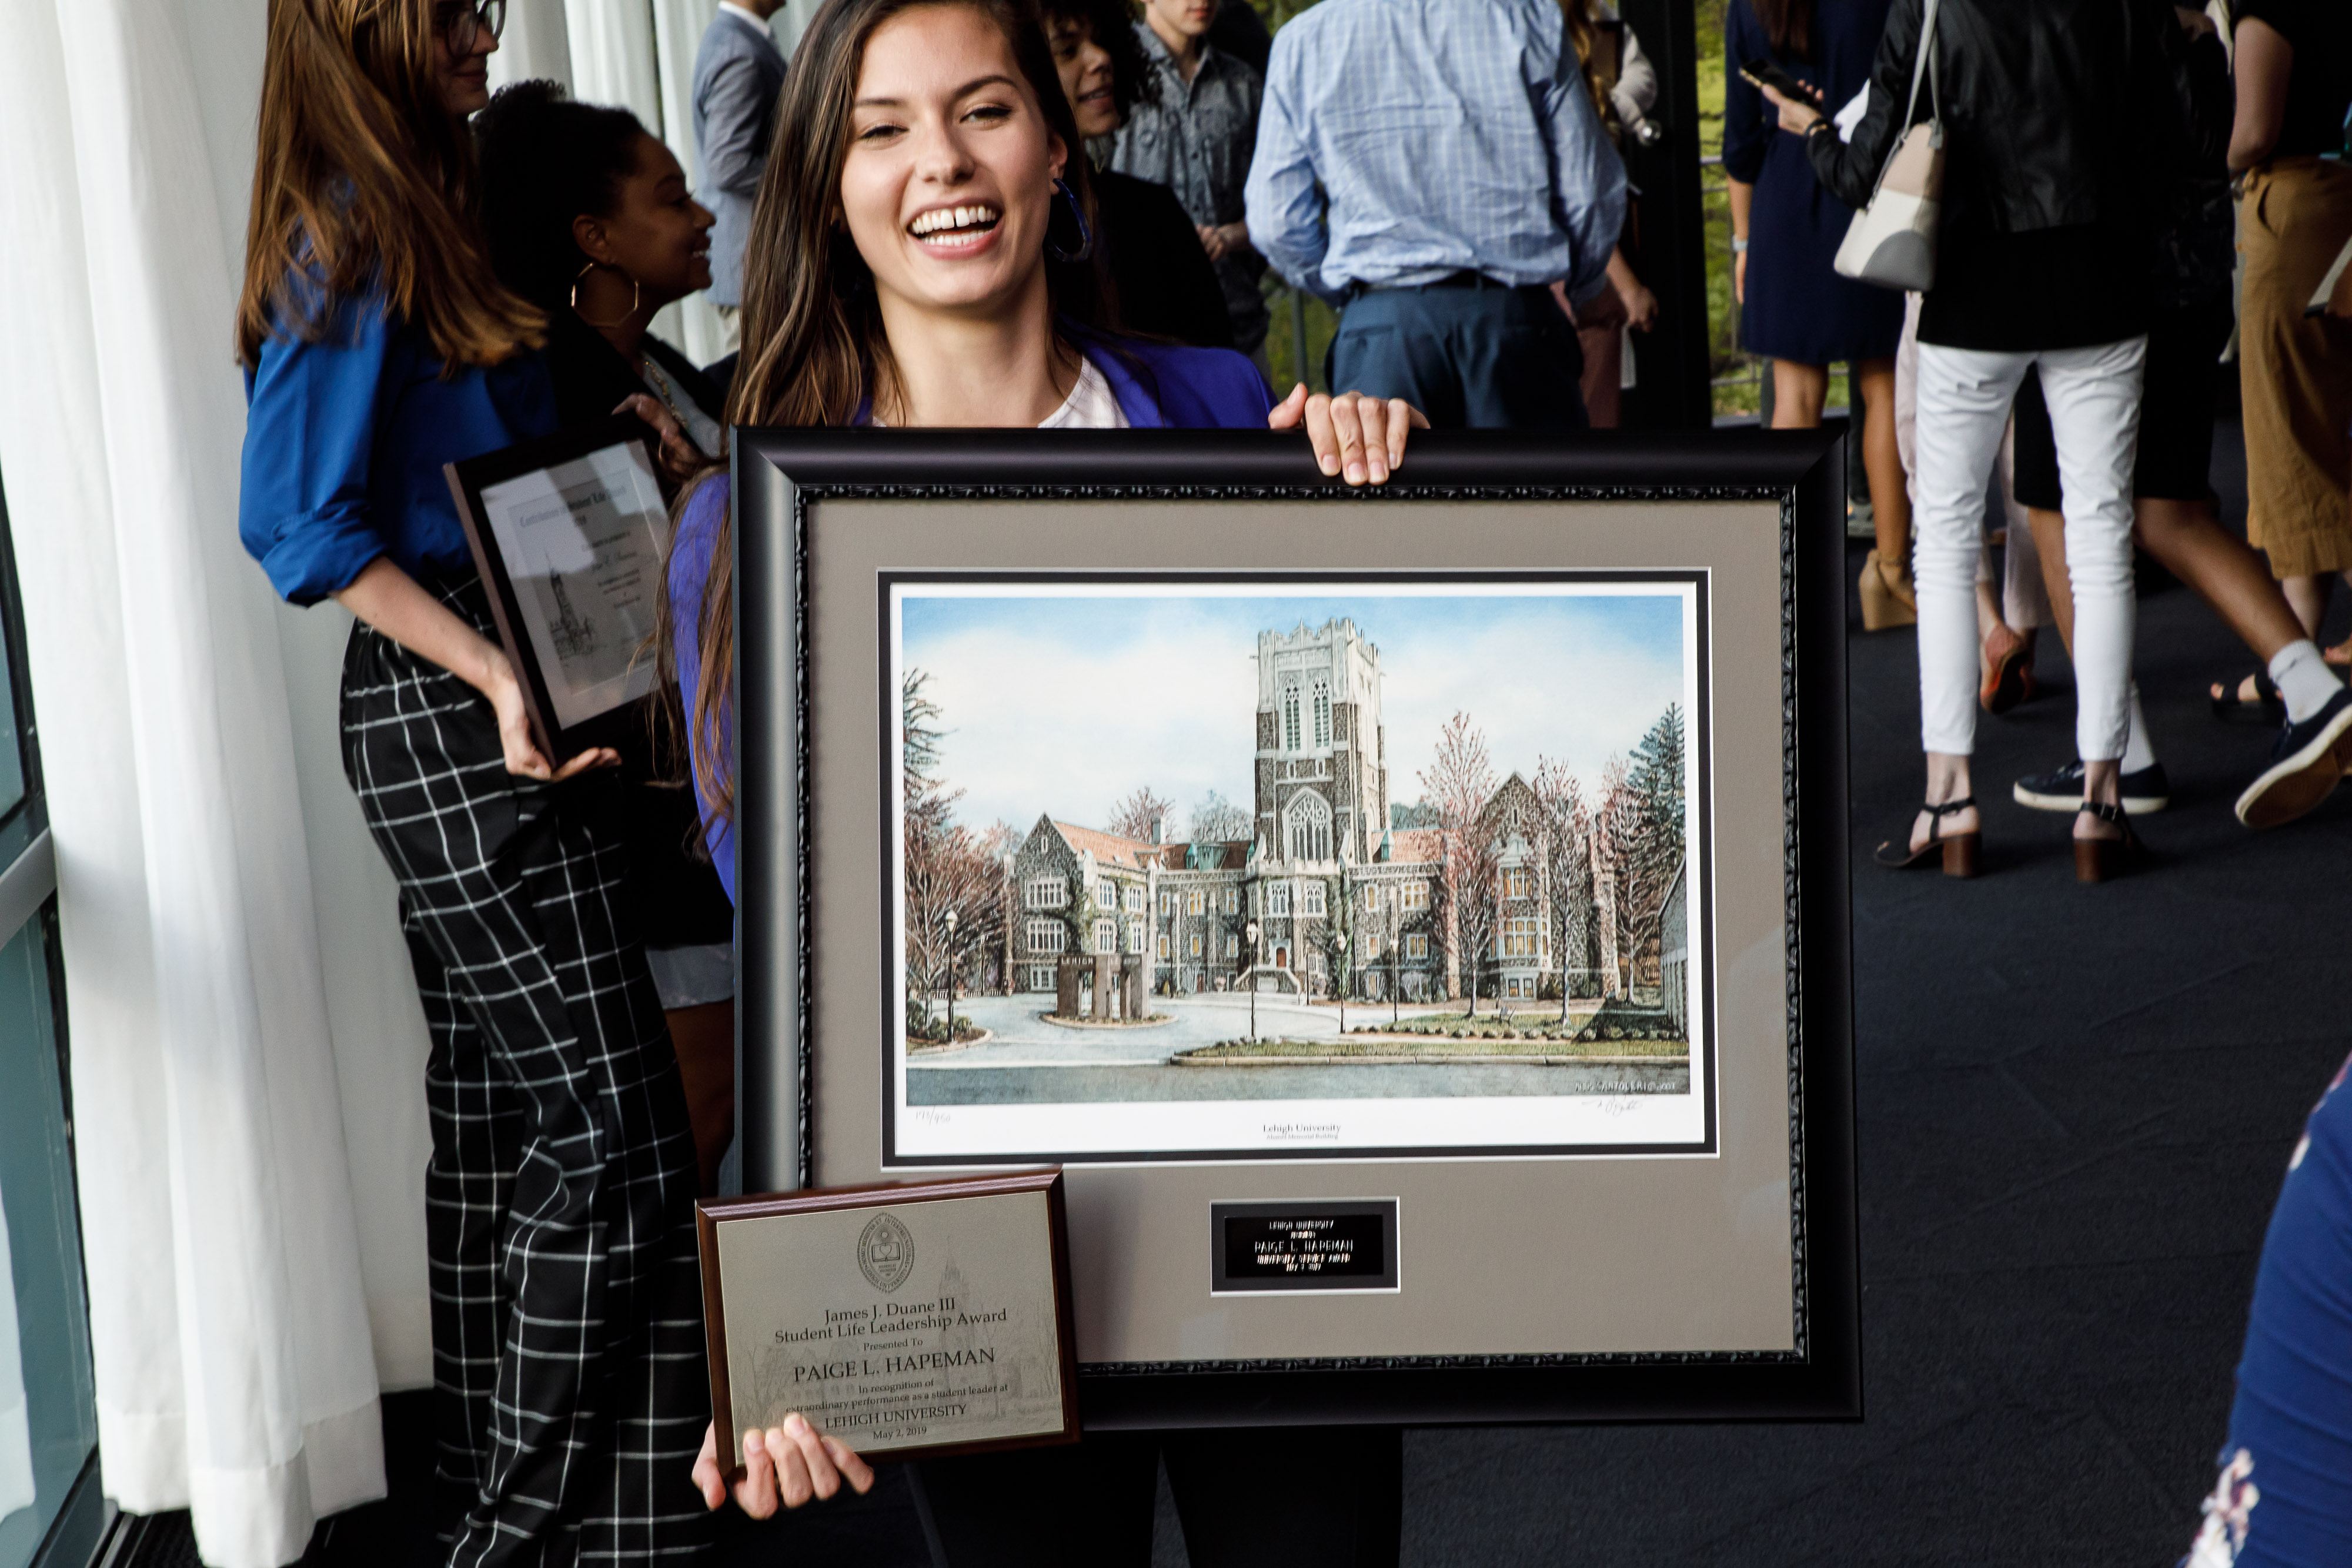 2019 winner with framed photo award